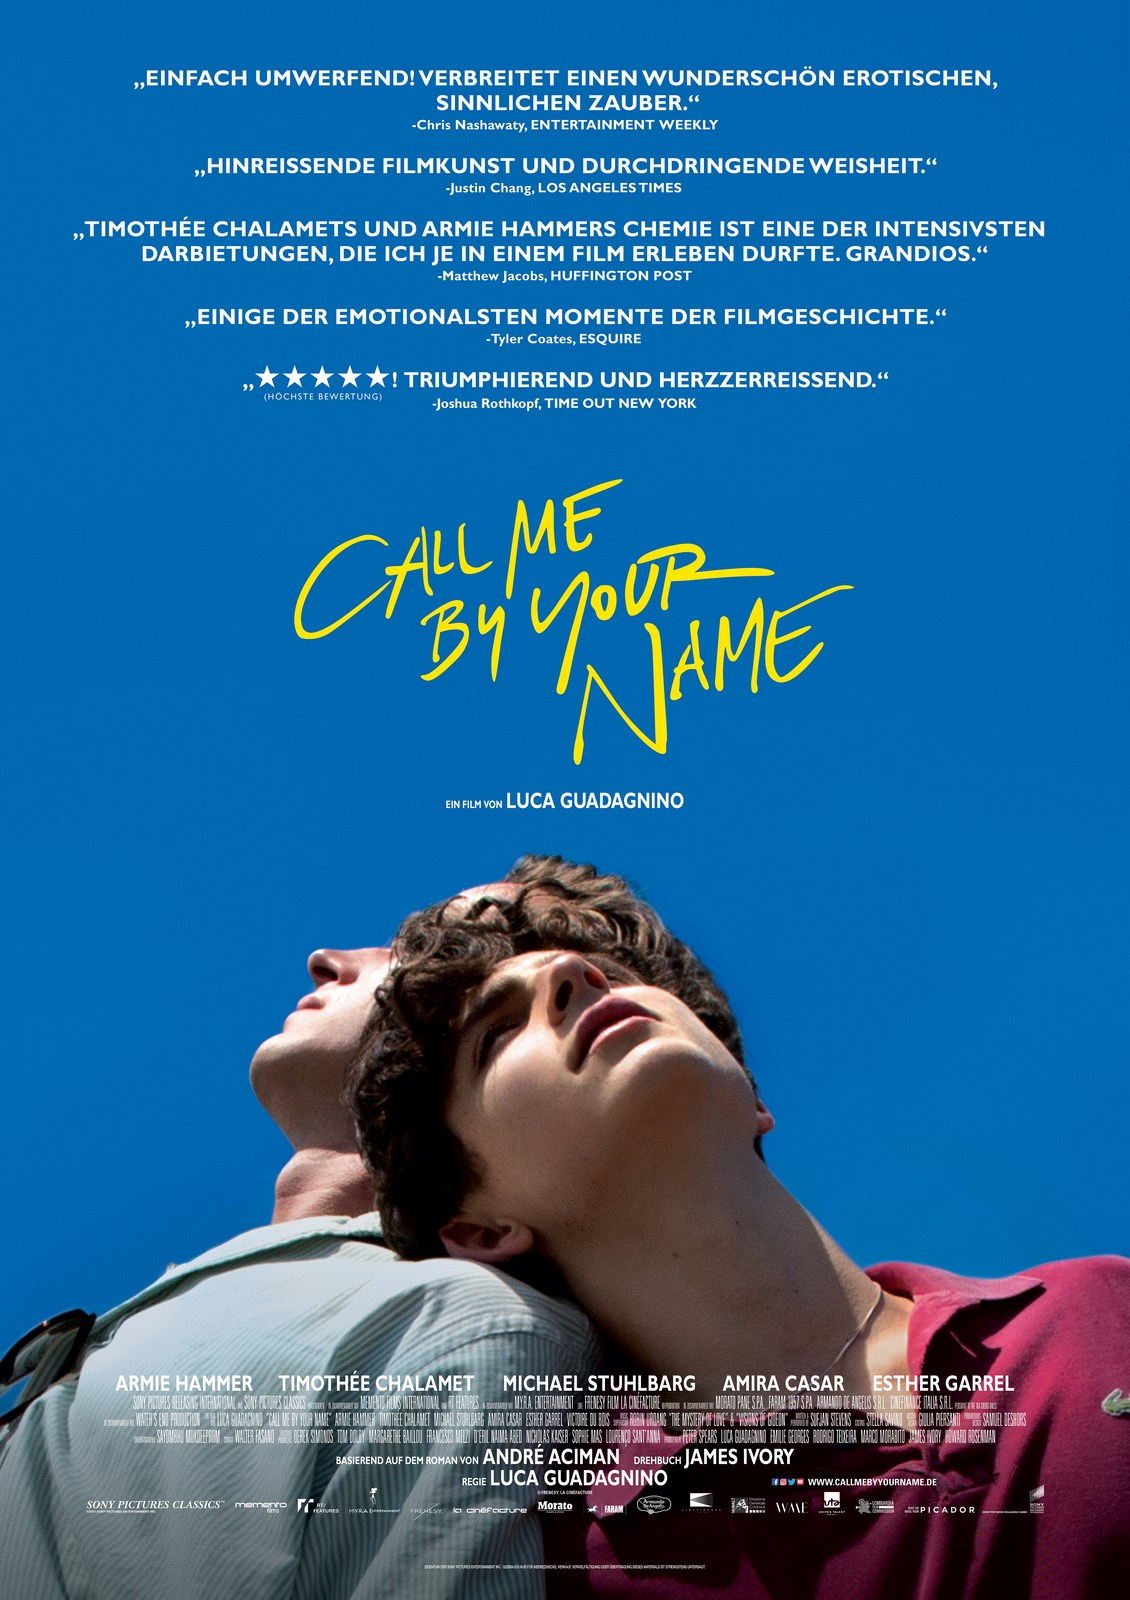 Call Me By Your Name - Film 2017 - FILMSTARTS.de